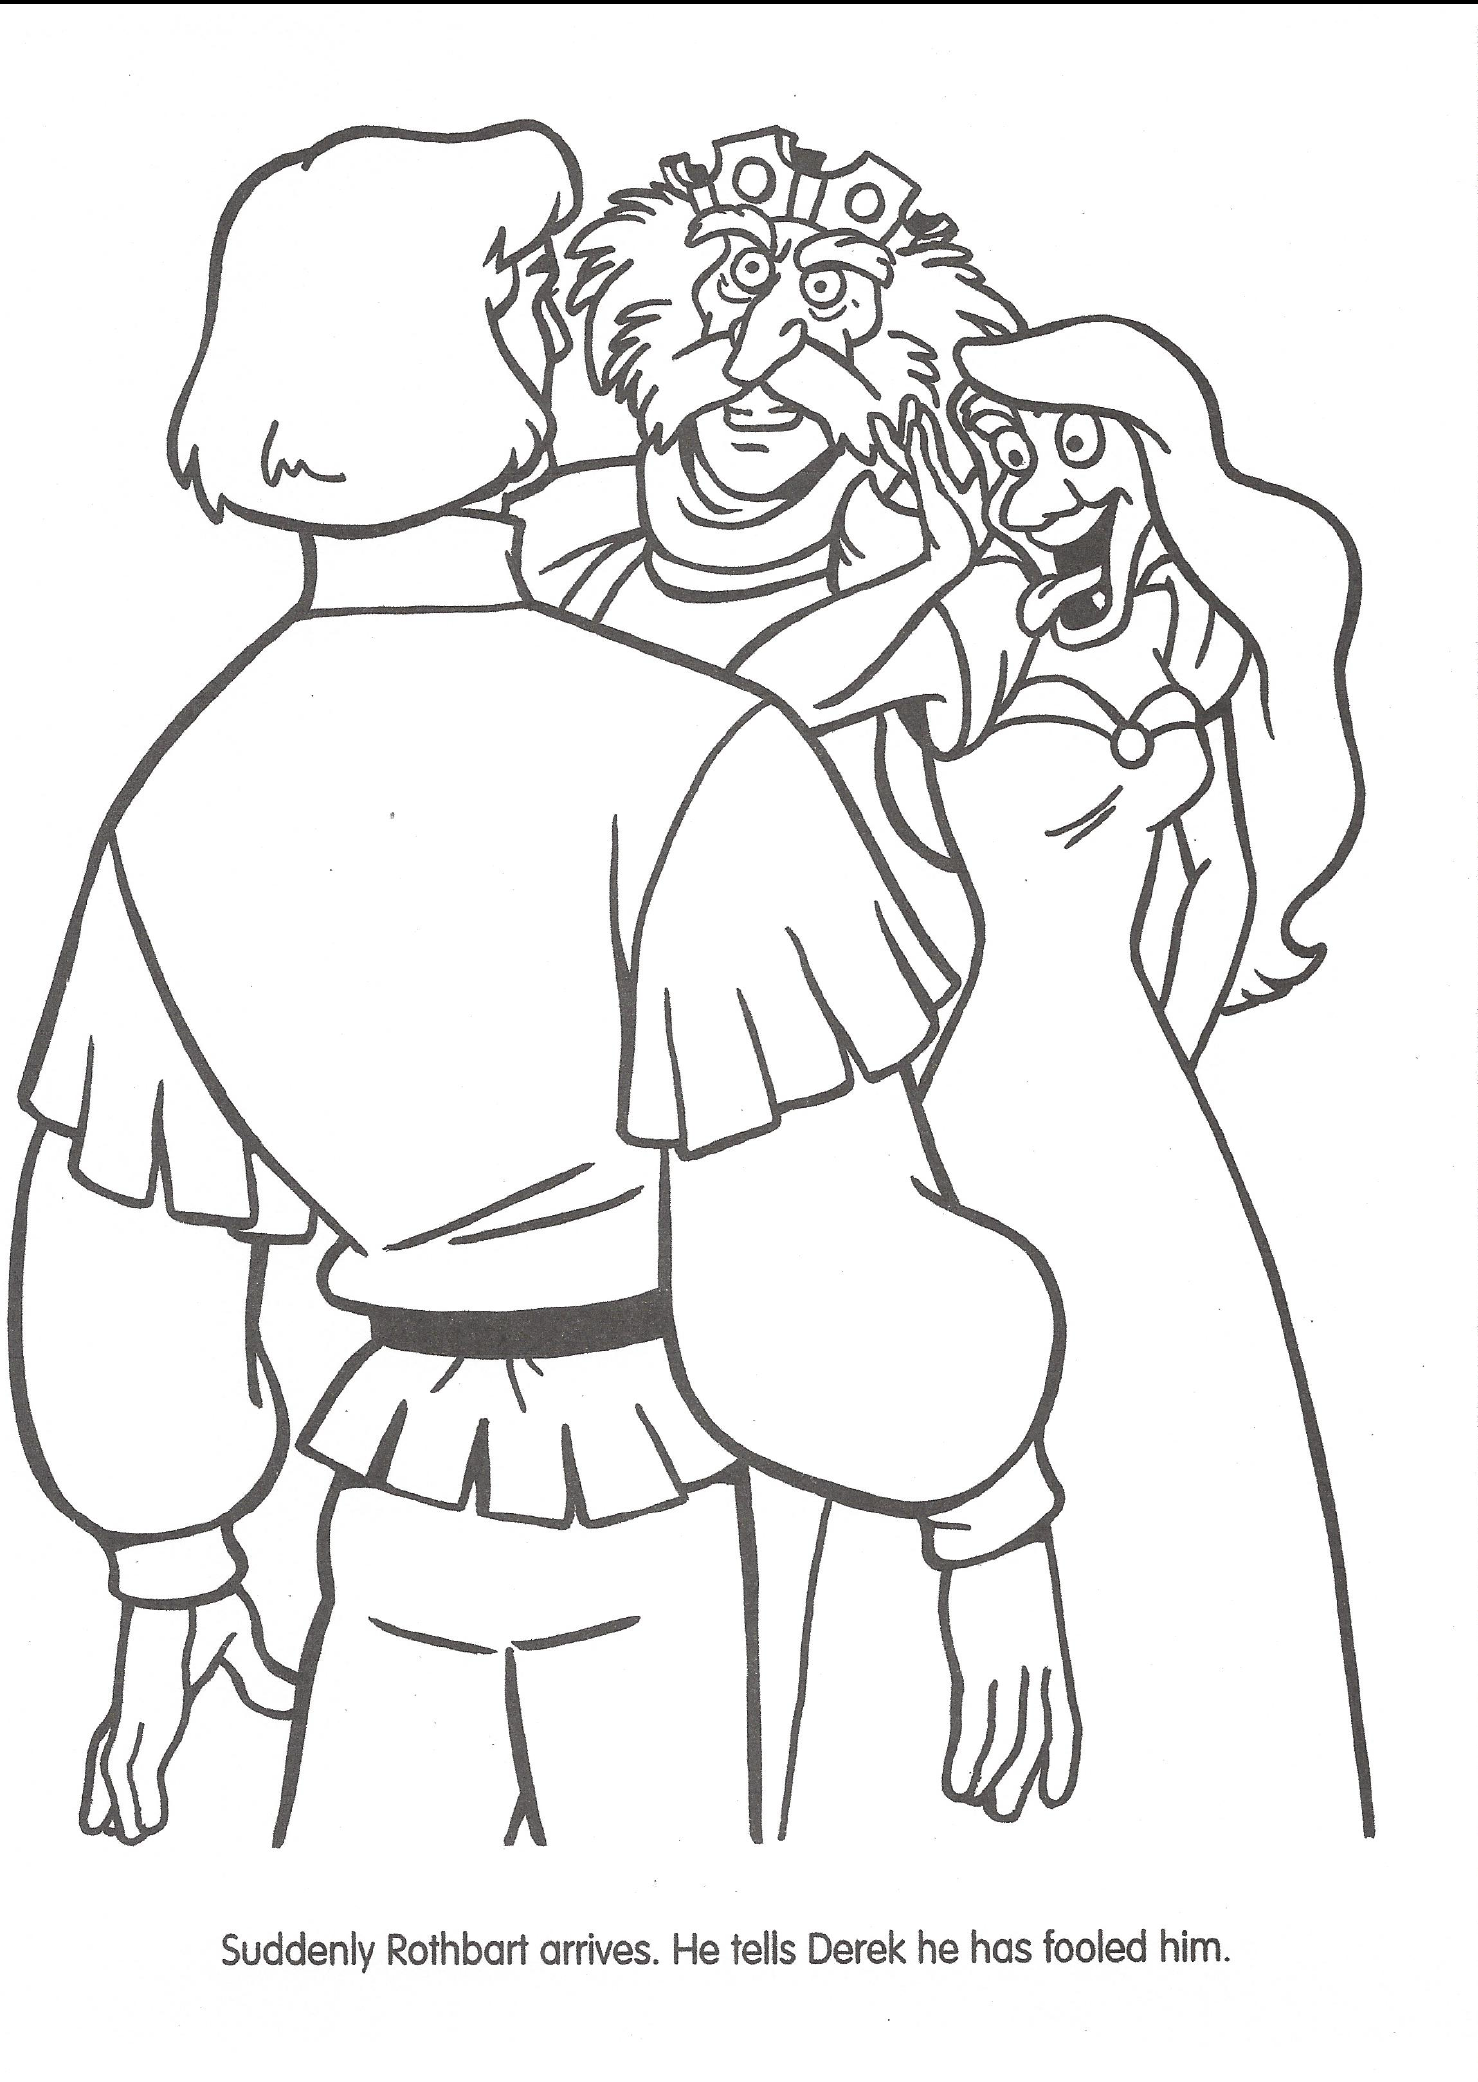 Swan princess coloring pages free - Swan Princess Official Coloring Page 43